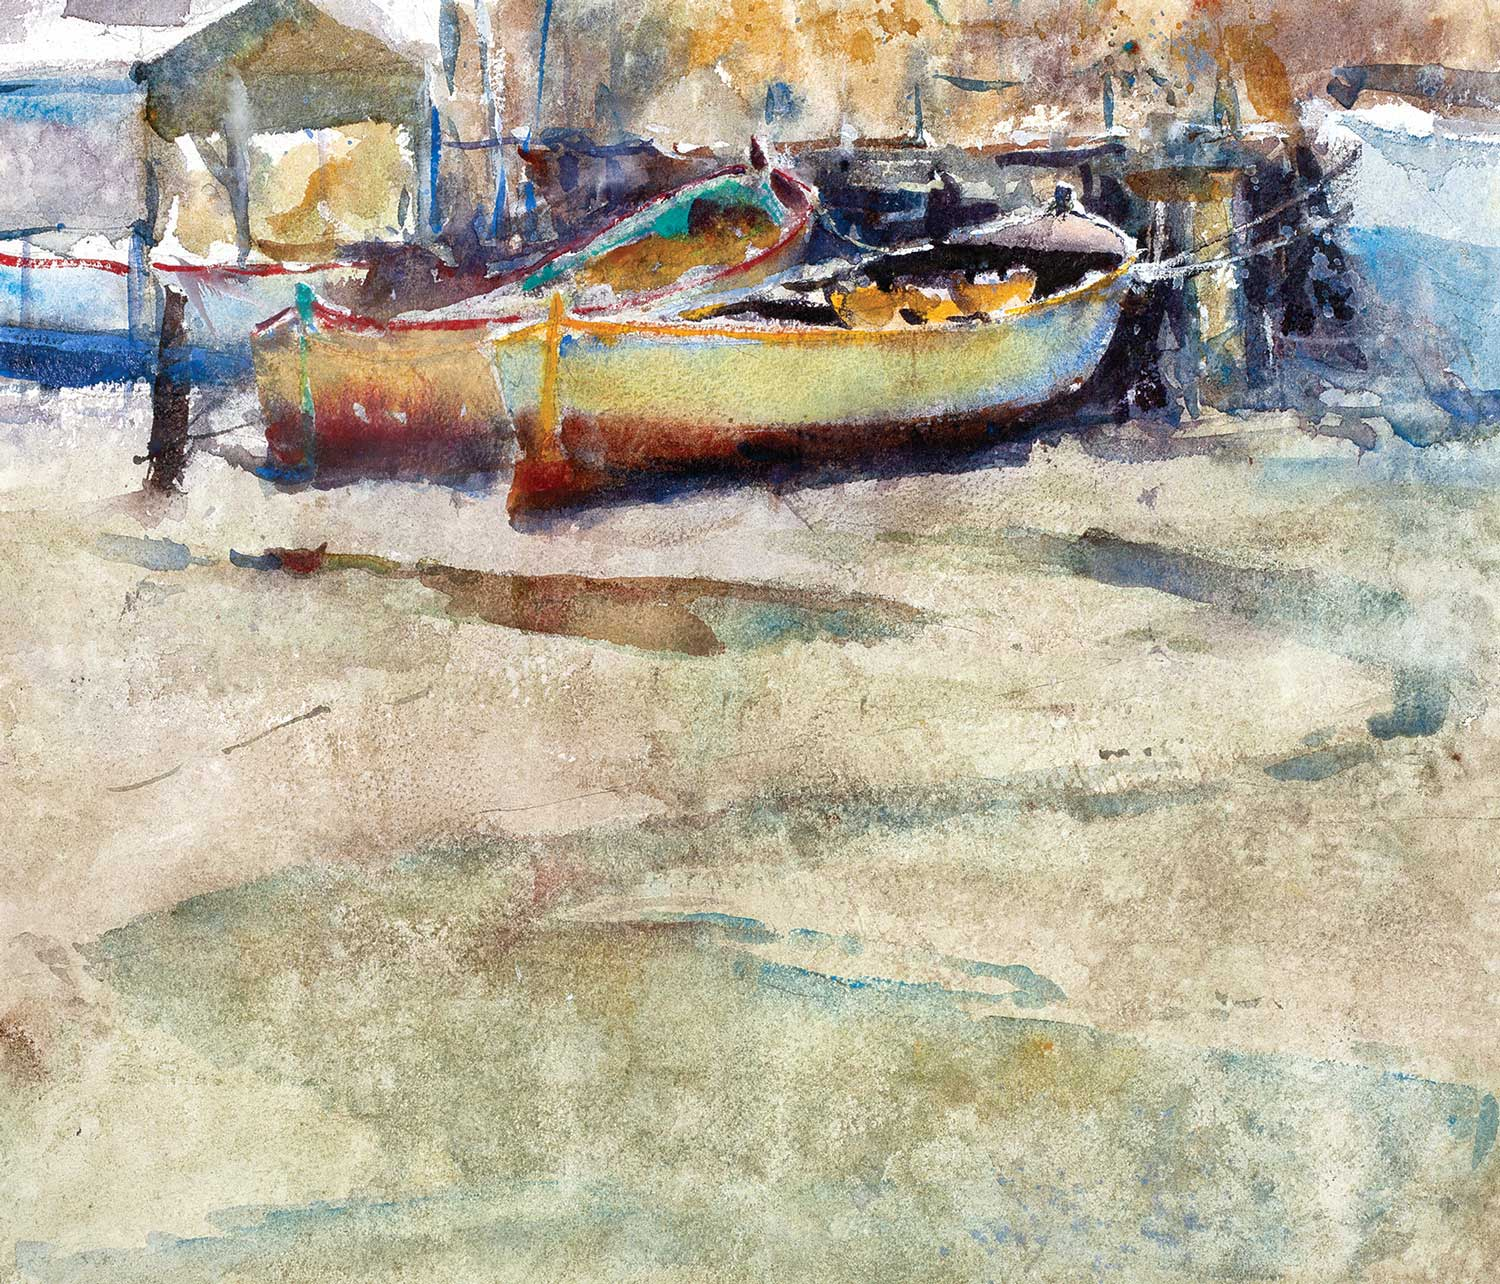 Low Tide, Thames 38 x 33 cm (Featured on recent London APV Film)